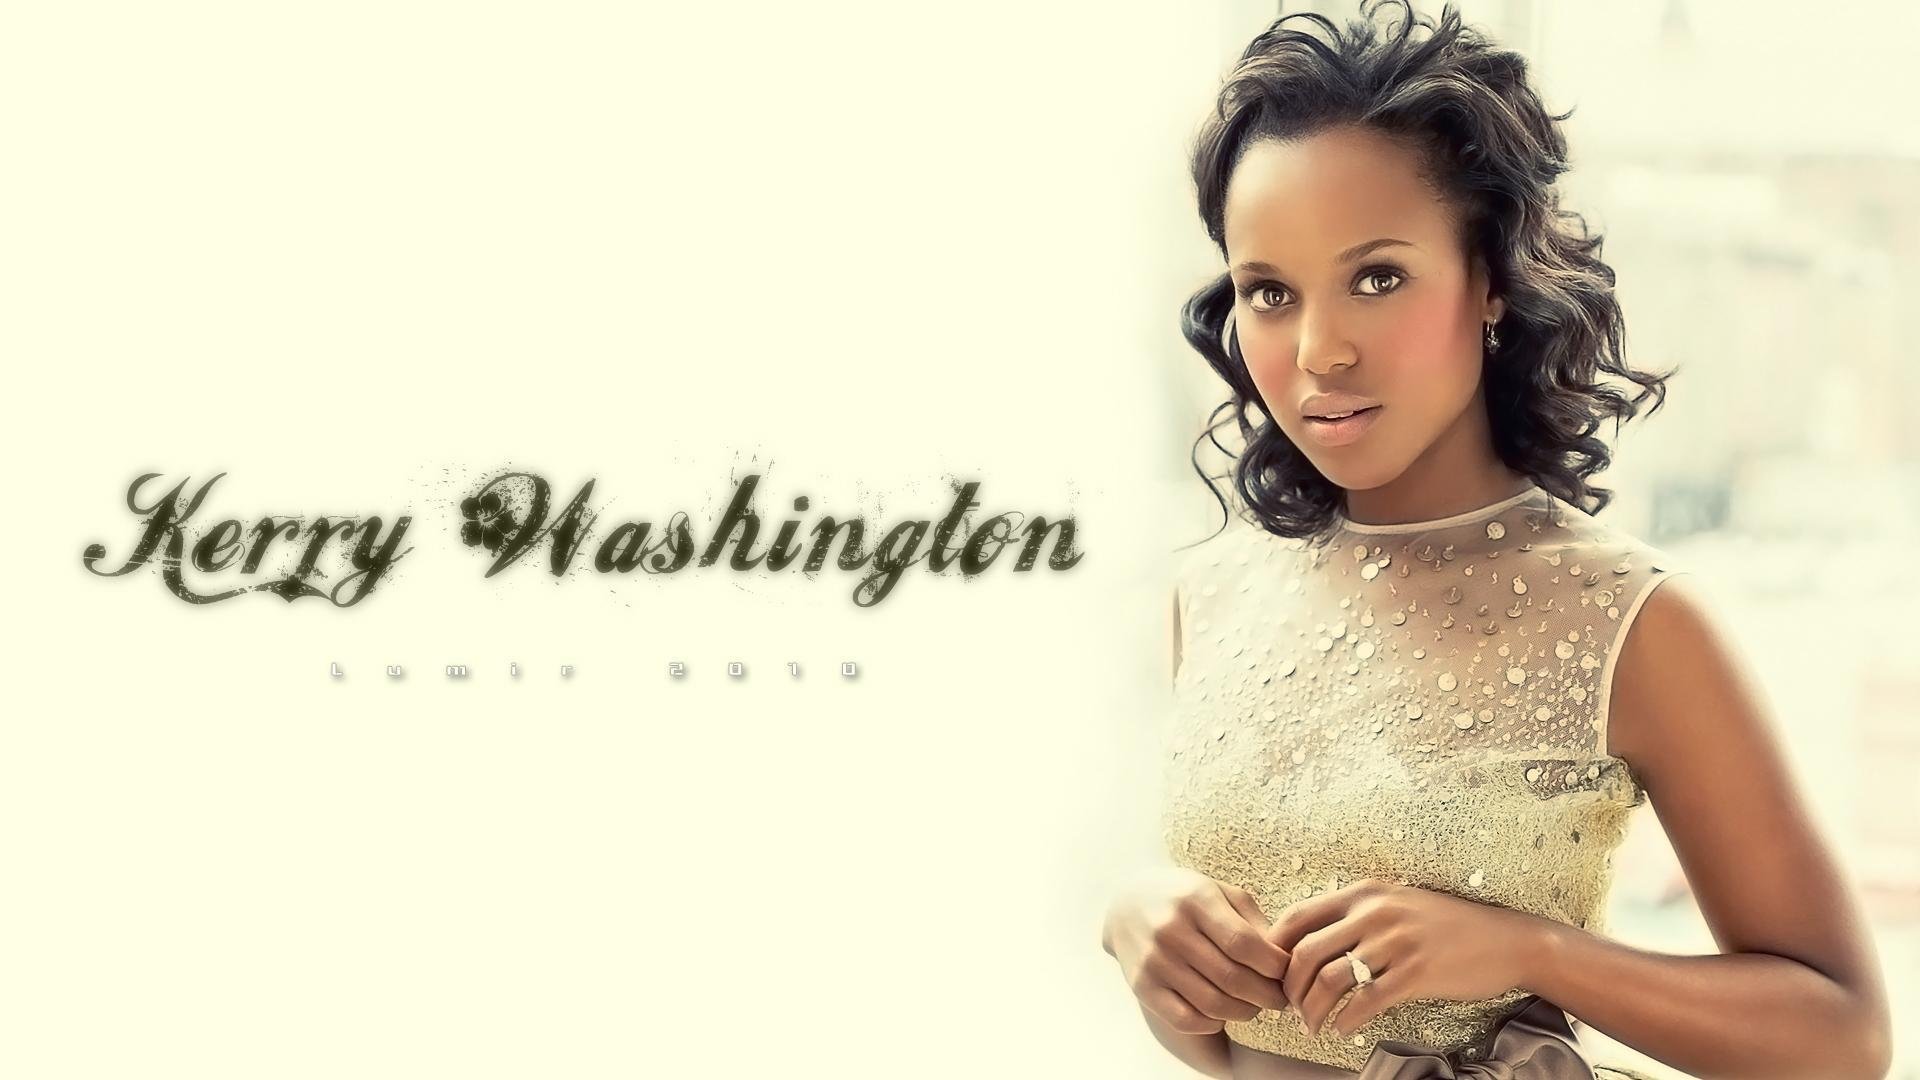 Kerry Washington Wallpapers 4